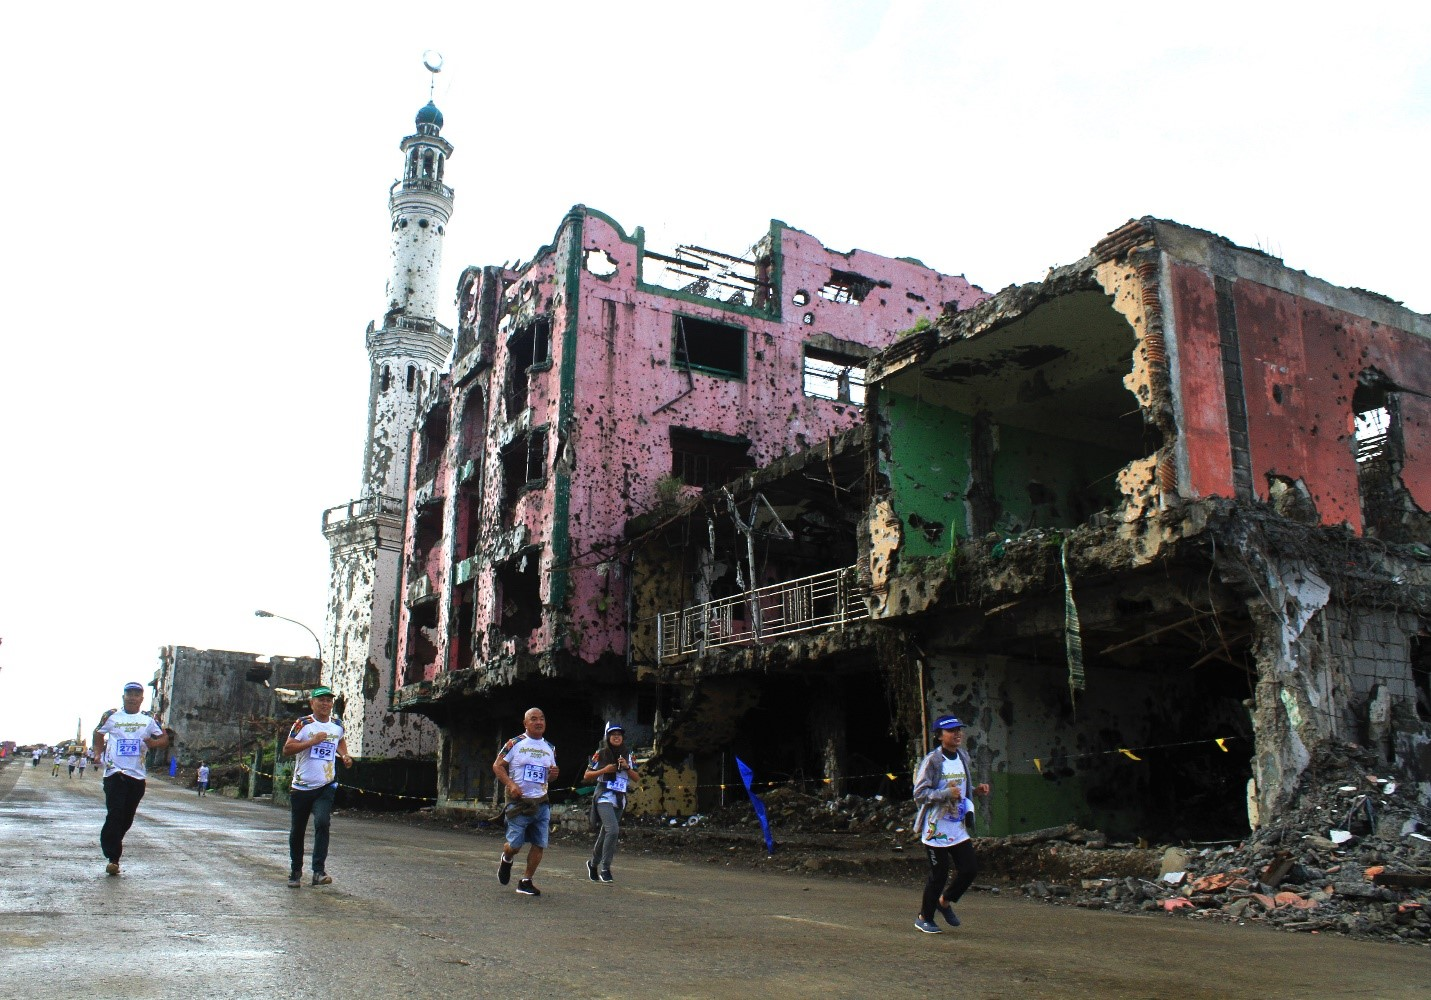 """Runners join a """"fun run"""" fundraiser in the ruined commercial district of Marawi, where Islamic State-linked militants engaged Philippine security forces in vicious firefights two years ago, Oct. 17, 2019. (Photo: Richel V. Umel/BenarNews)"""